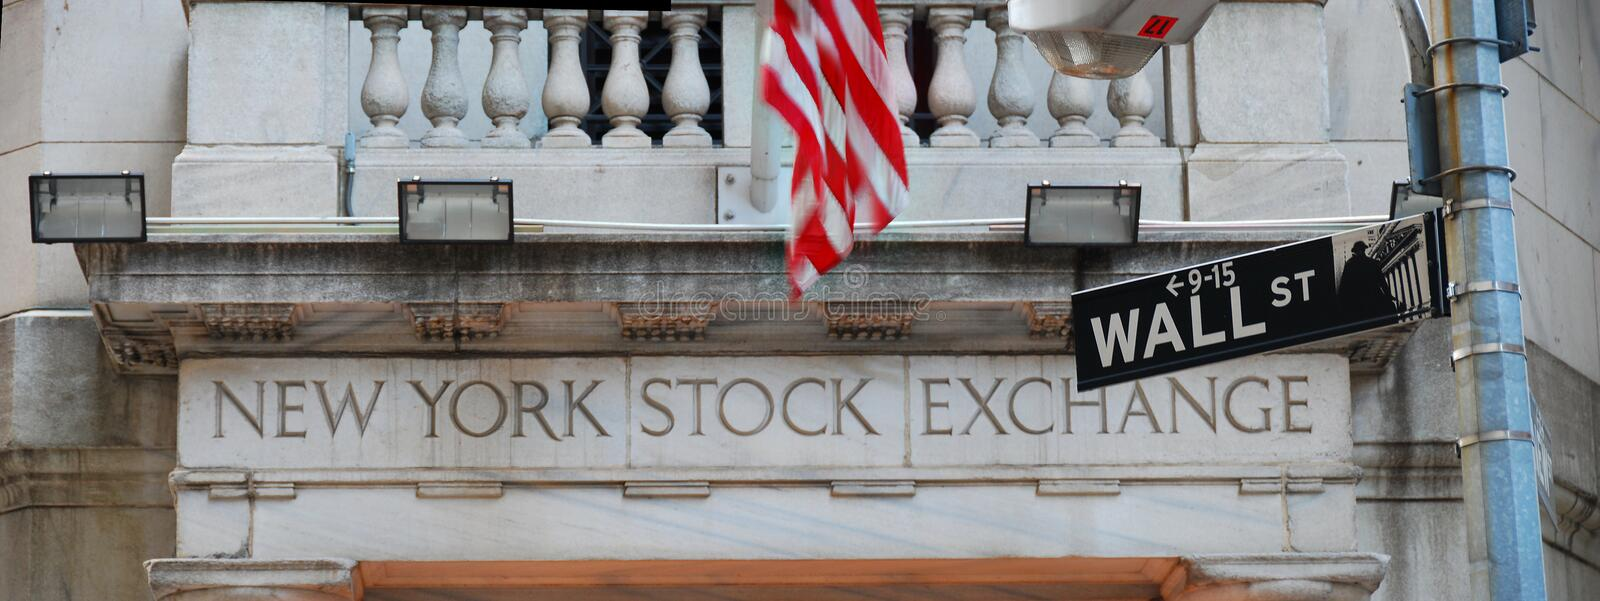 Wall Street et Bourse de New York images libres de droits